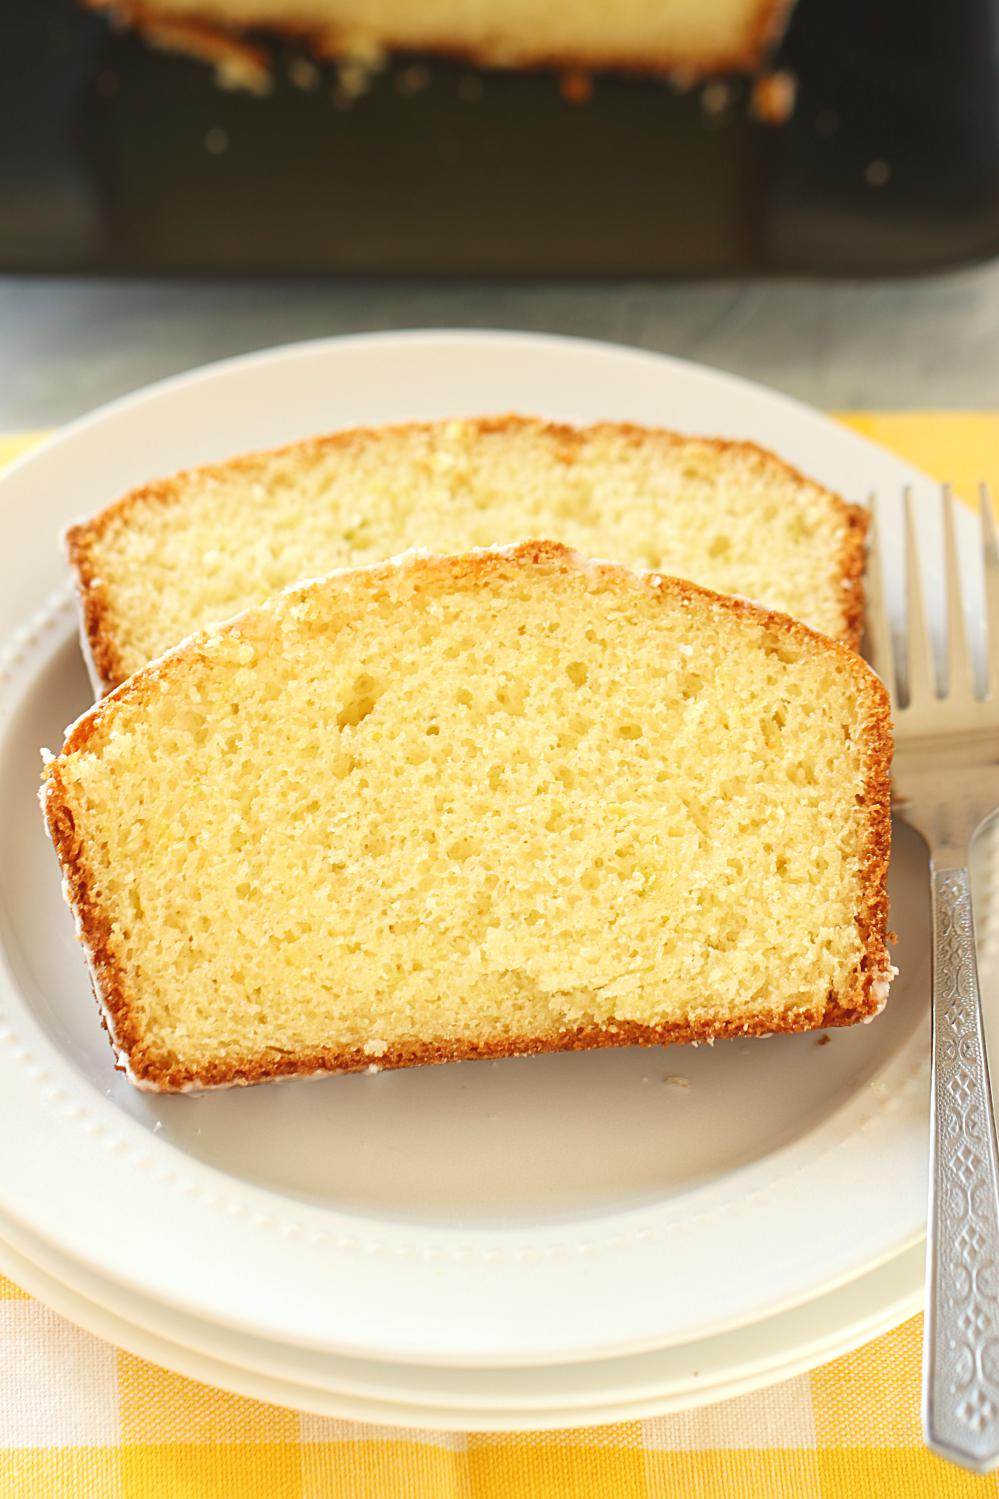 How To Make Up Lemon Pound Cake